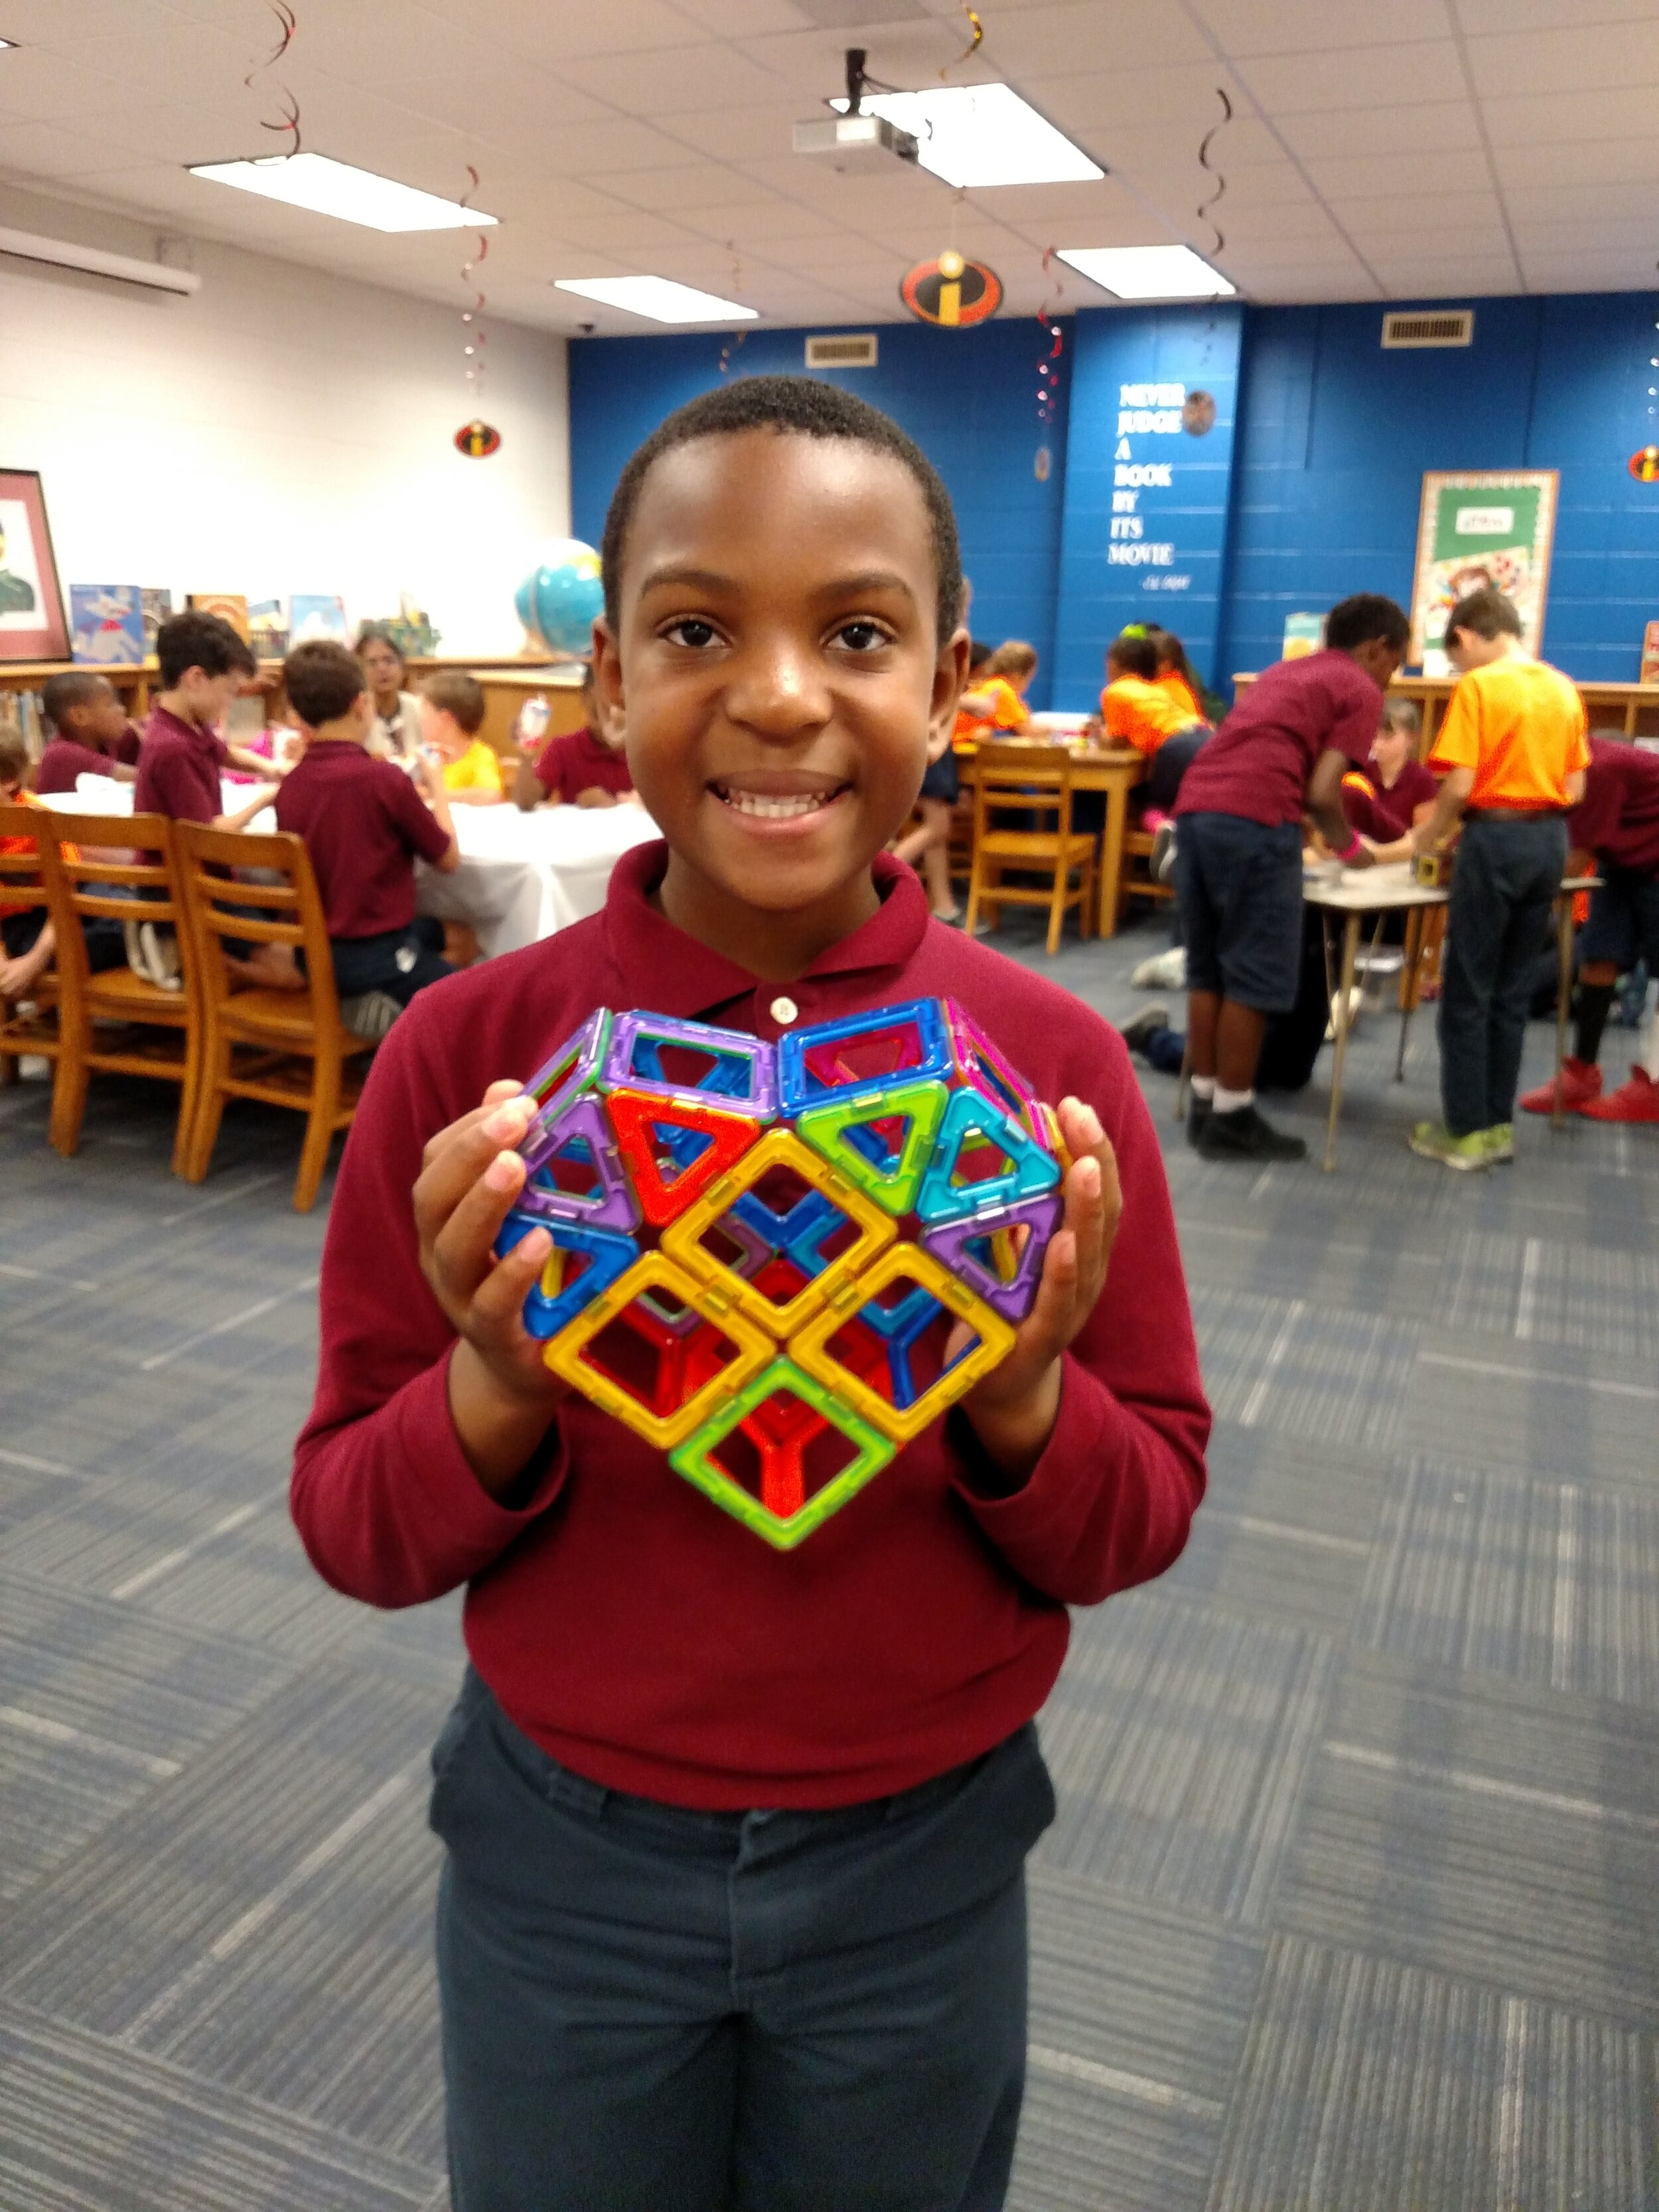 Students participating in STEM activities